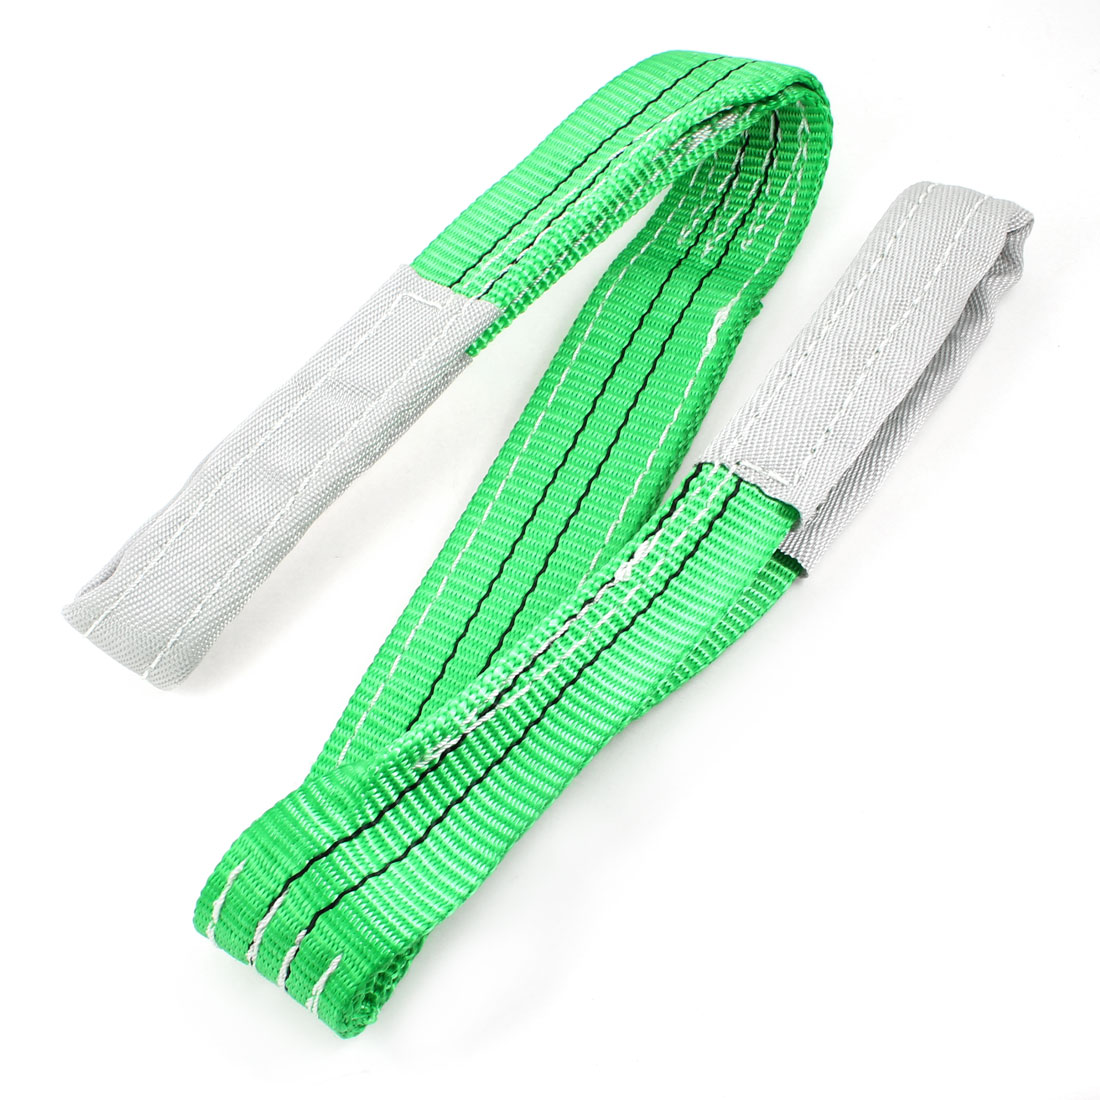 Green 2T Straight Capacity Eye to Eye Web Lifting Tow Strap 3.3Ft